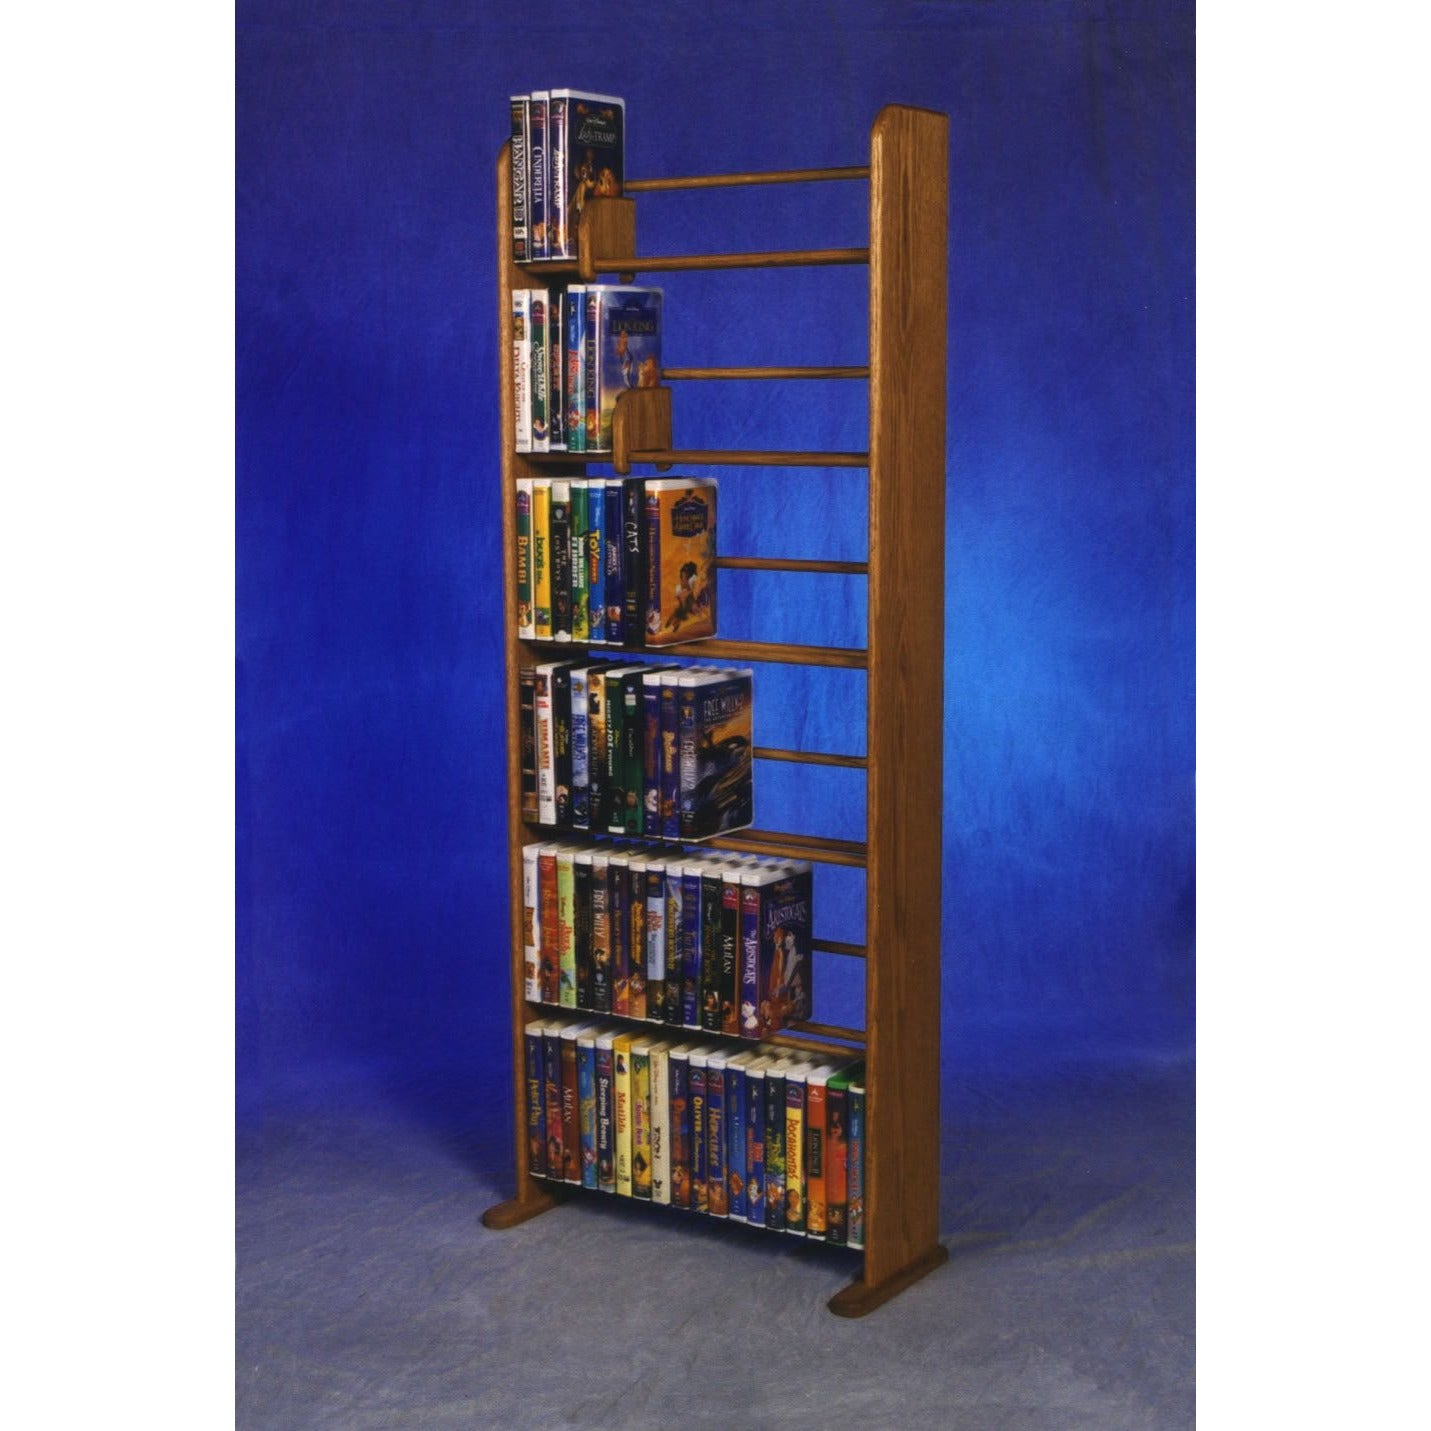 Model 605 DVD storage rack - honey oak